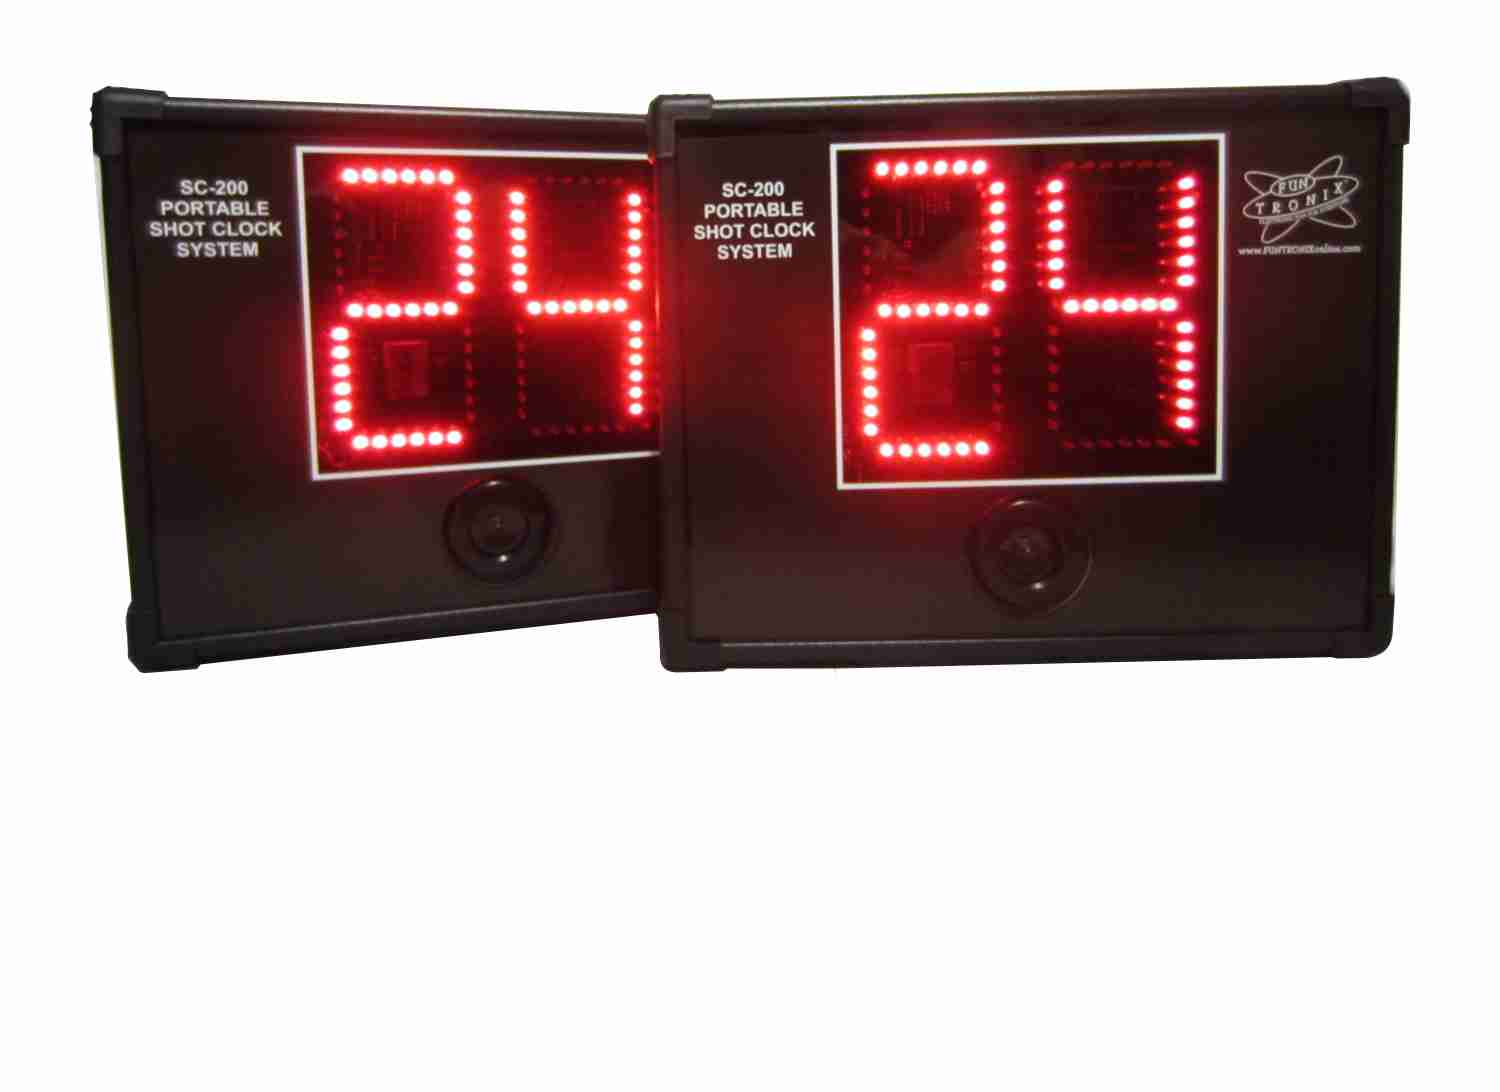 Portable wireless shot clock system